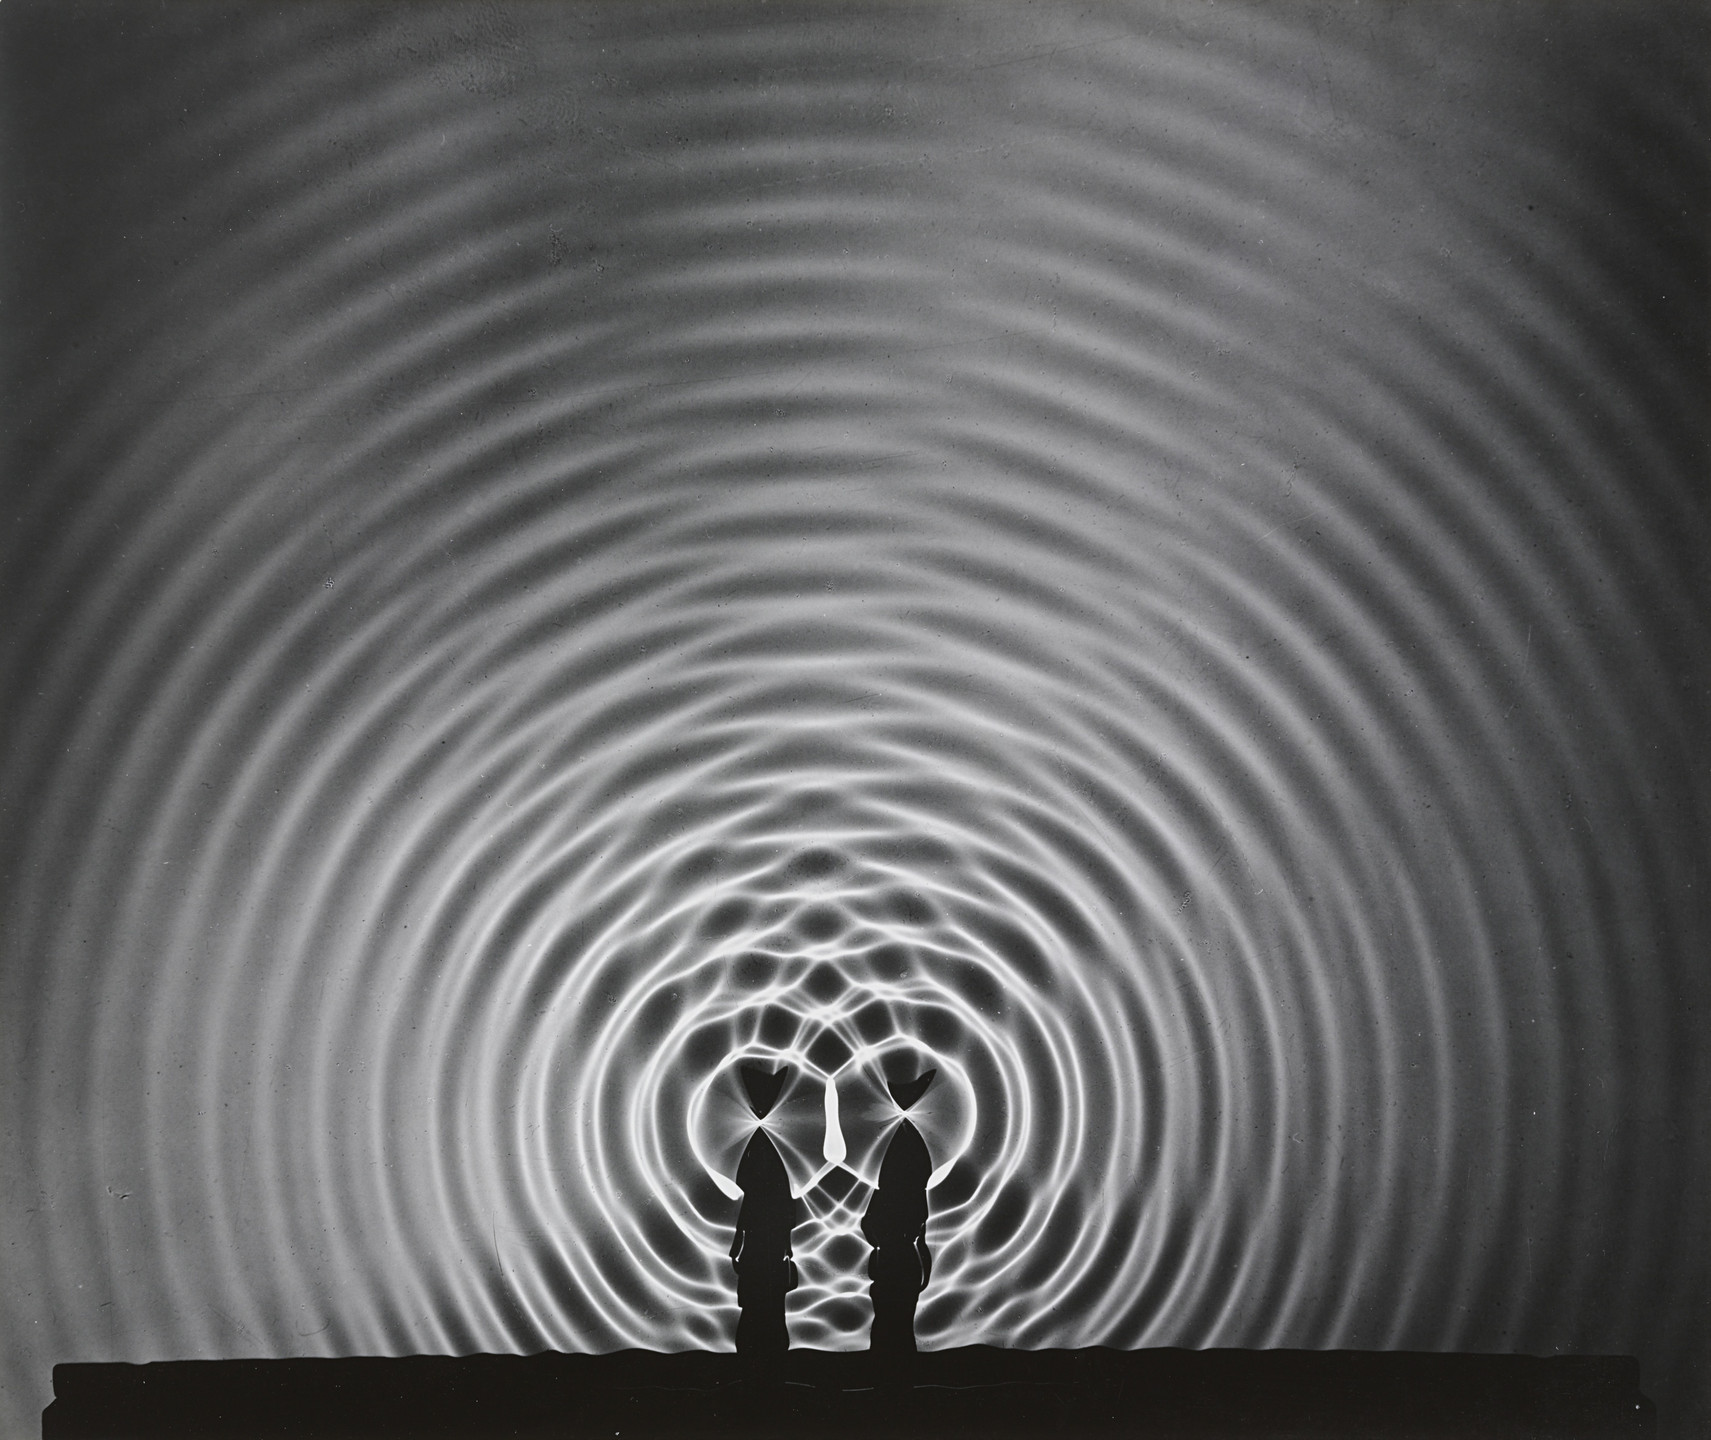 Berenice Abbott. Interference of Waves. 1958-61